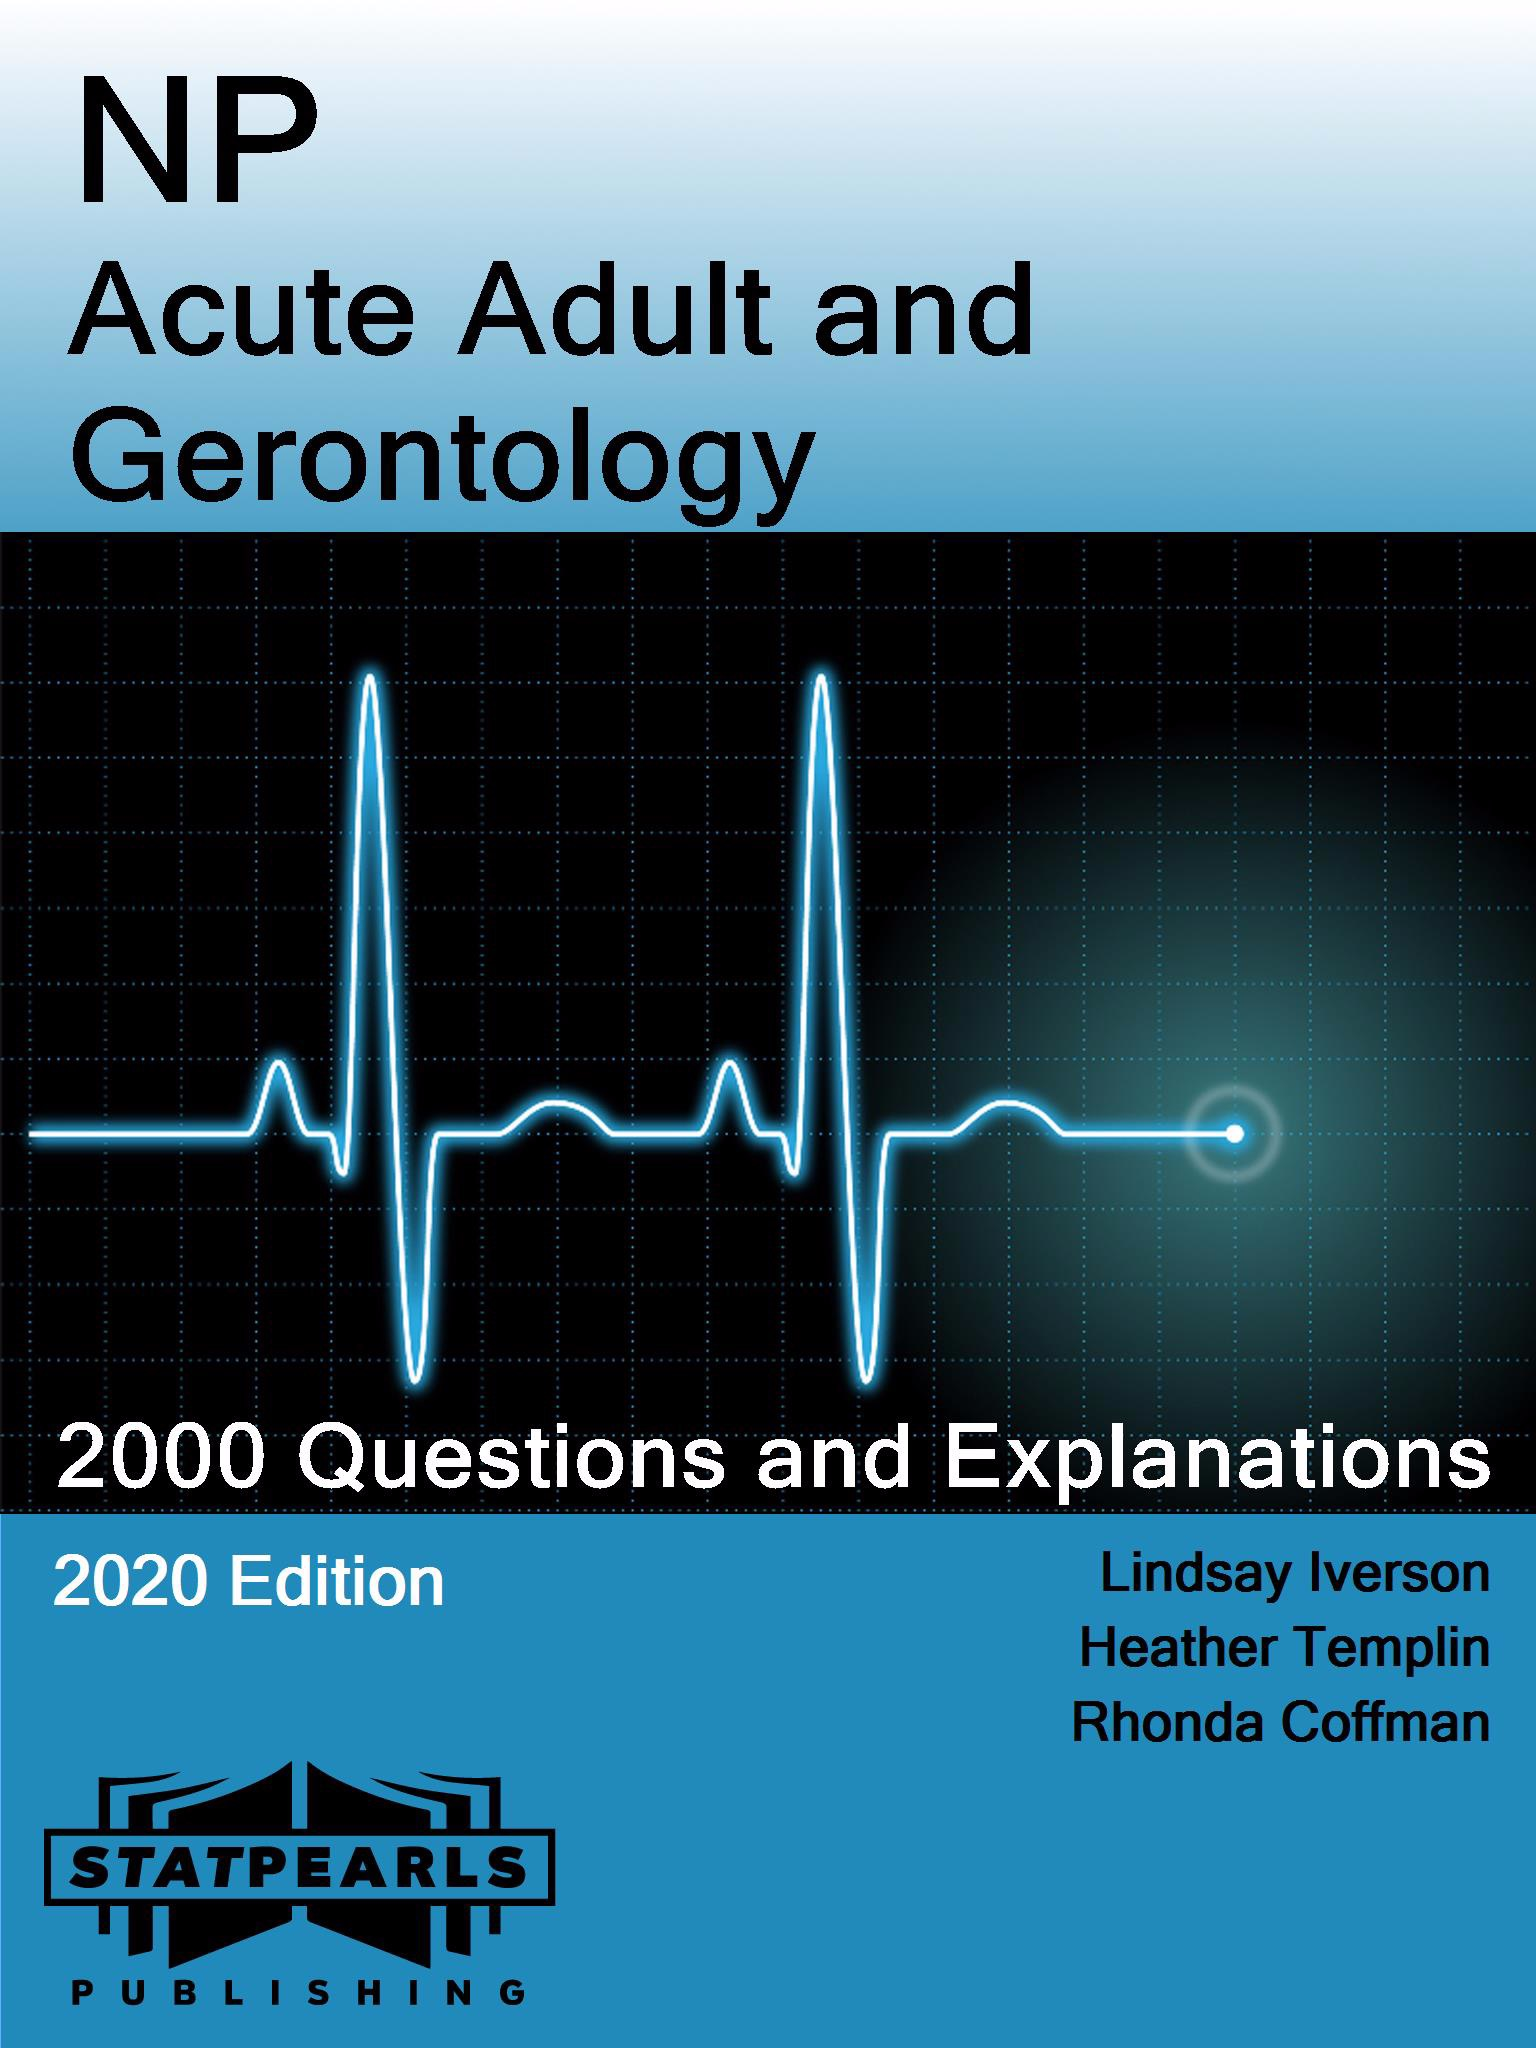 NP Acute Adult and Gerontology